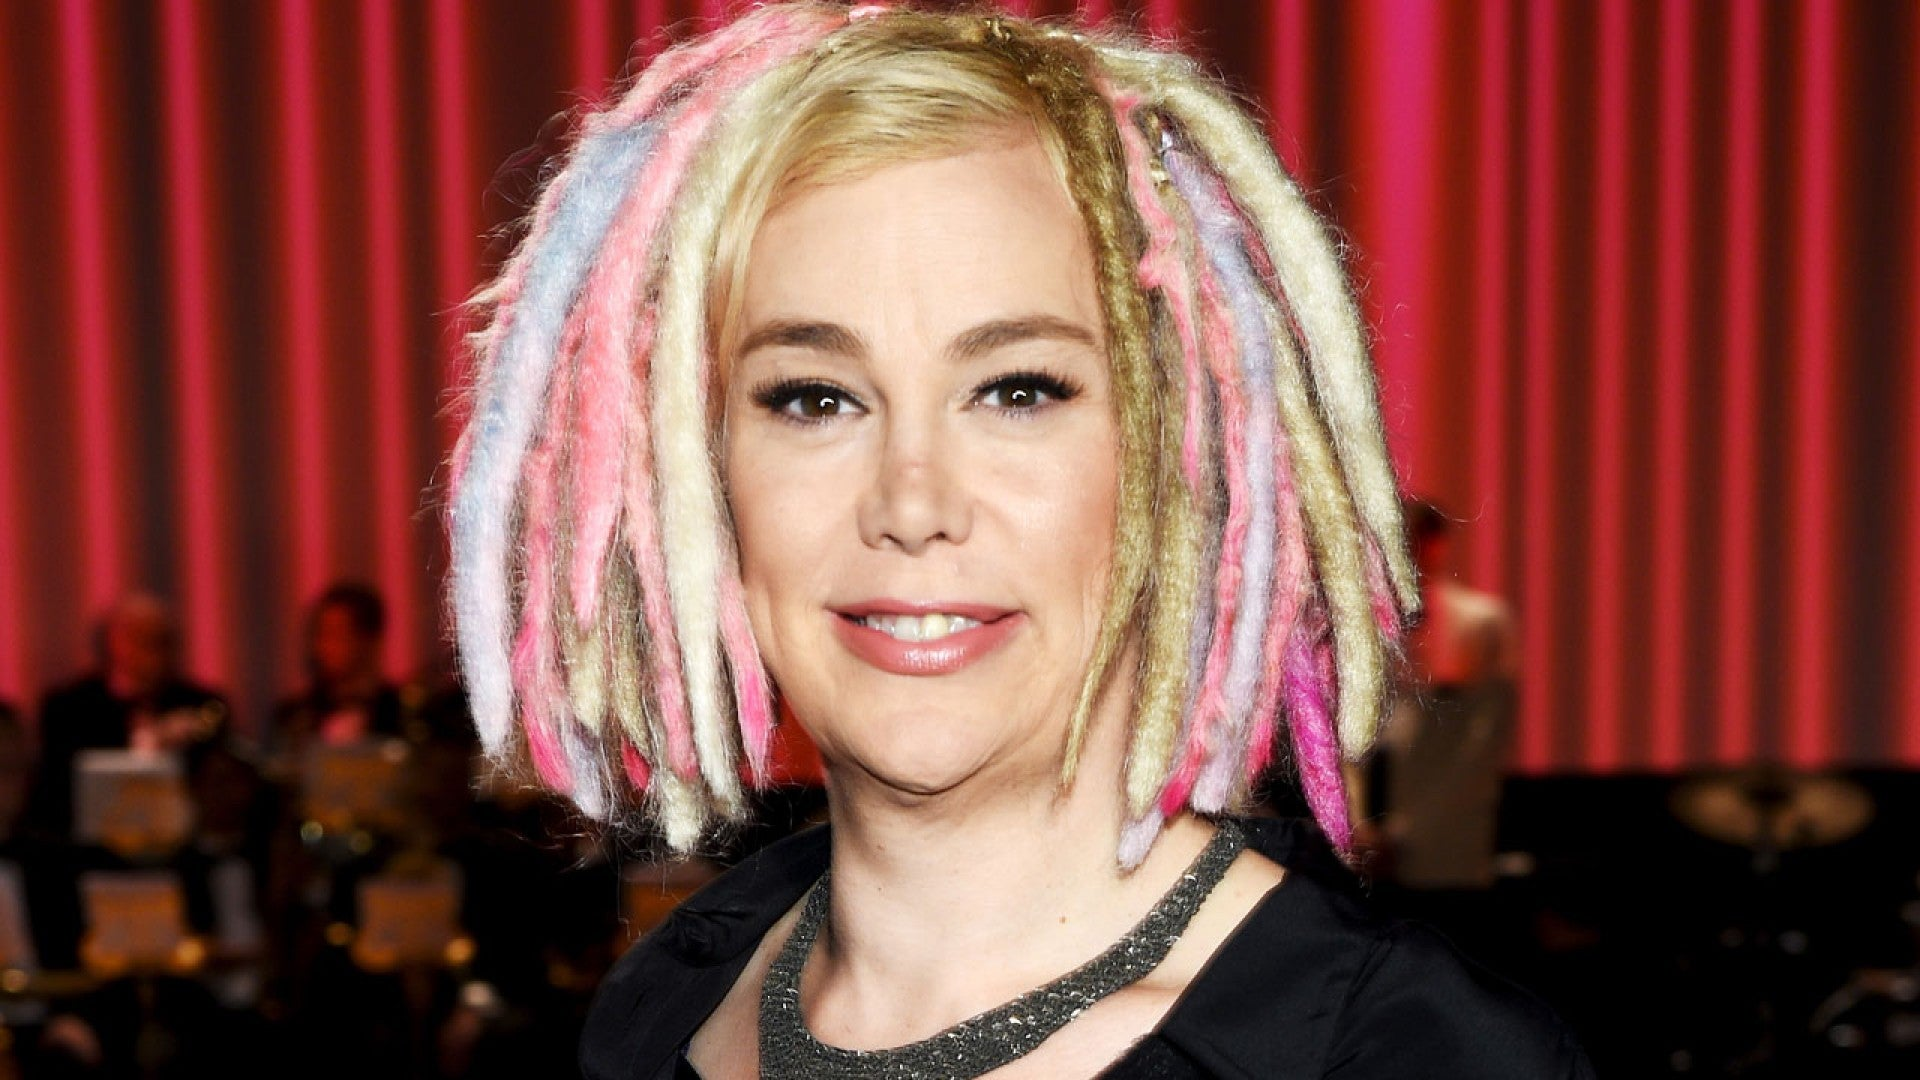 EXCLUSIVE: Lana Wachowski on Coming Out ...